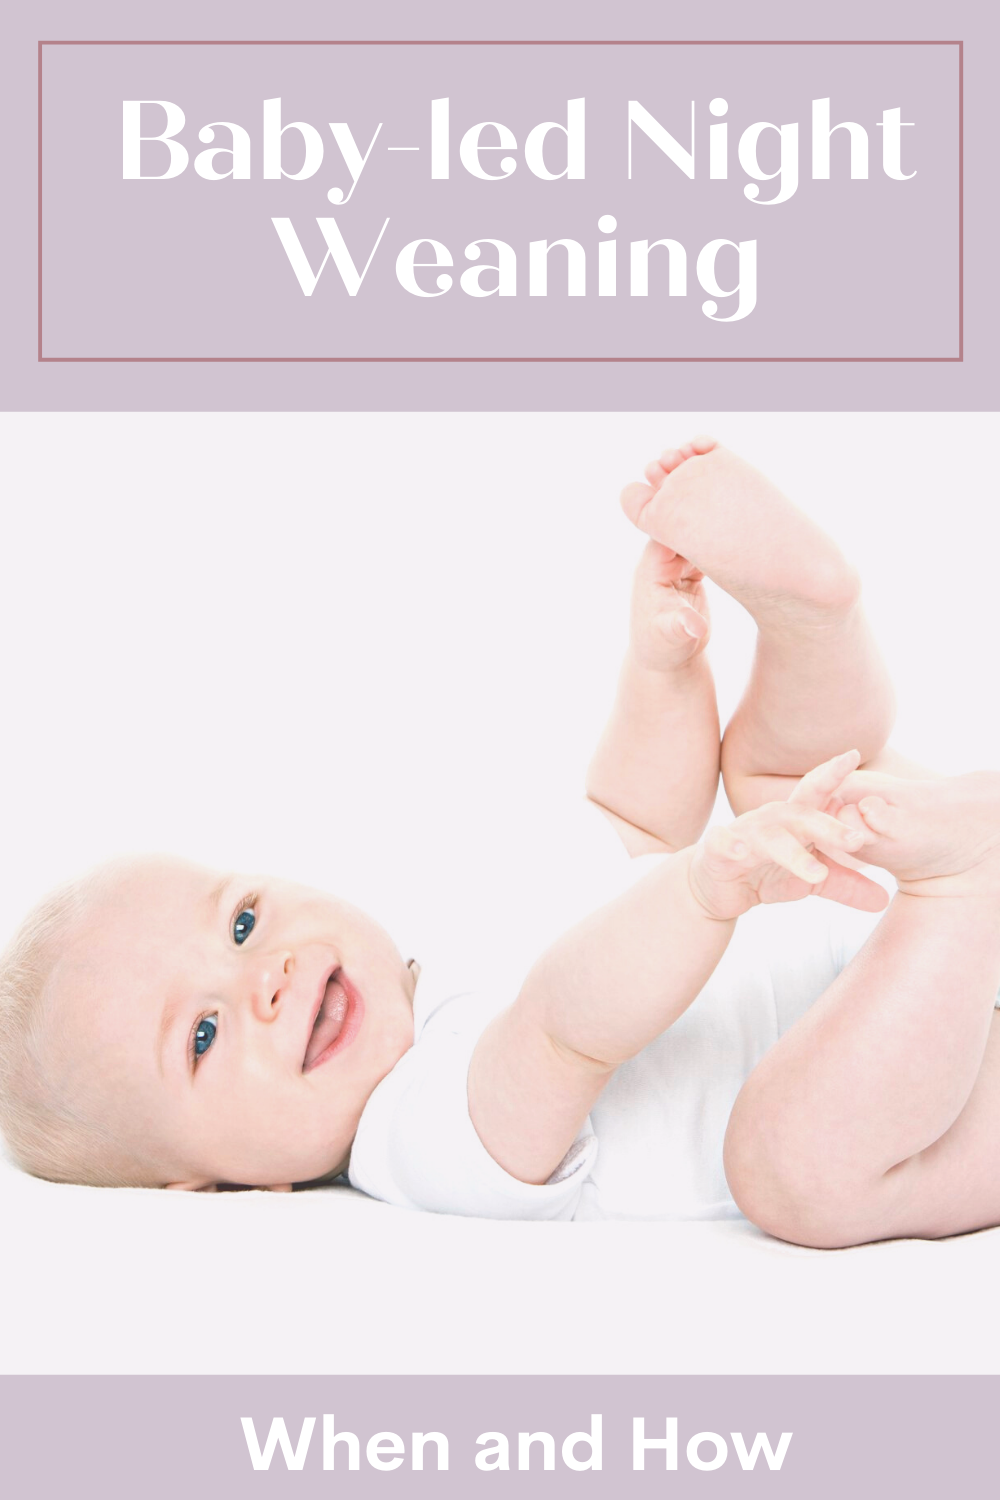 baby-led night weaning, when should my baby sleep through the night, when should I night wean, night weaning, Little Bell Sleep Solutions